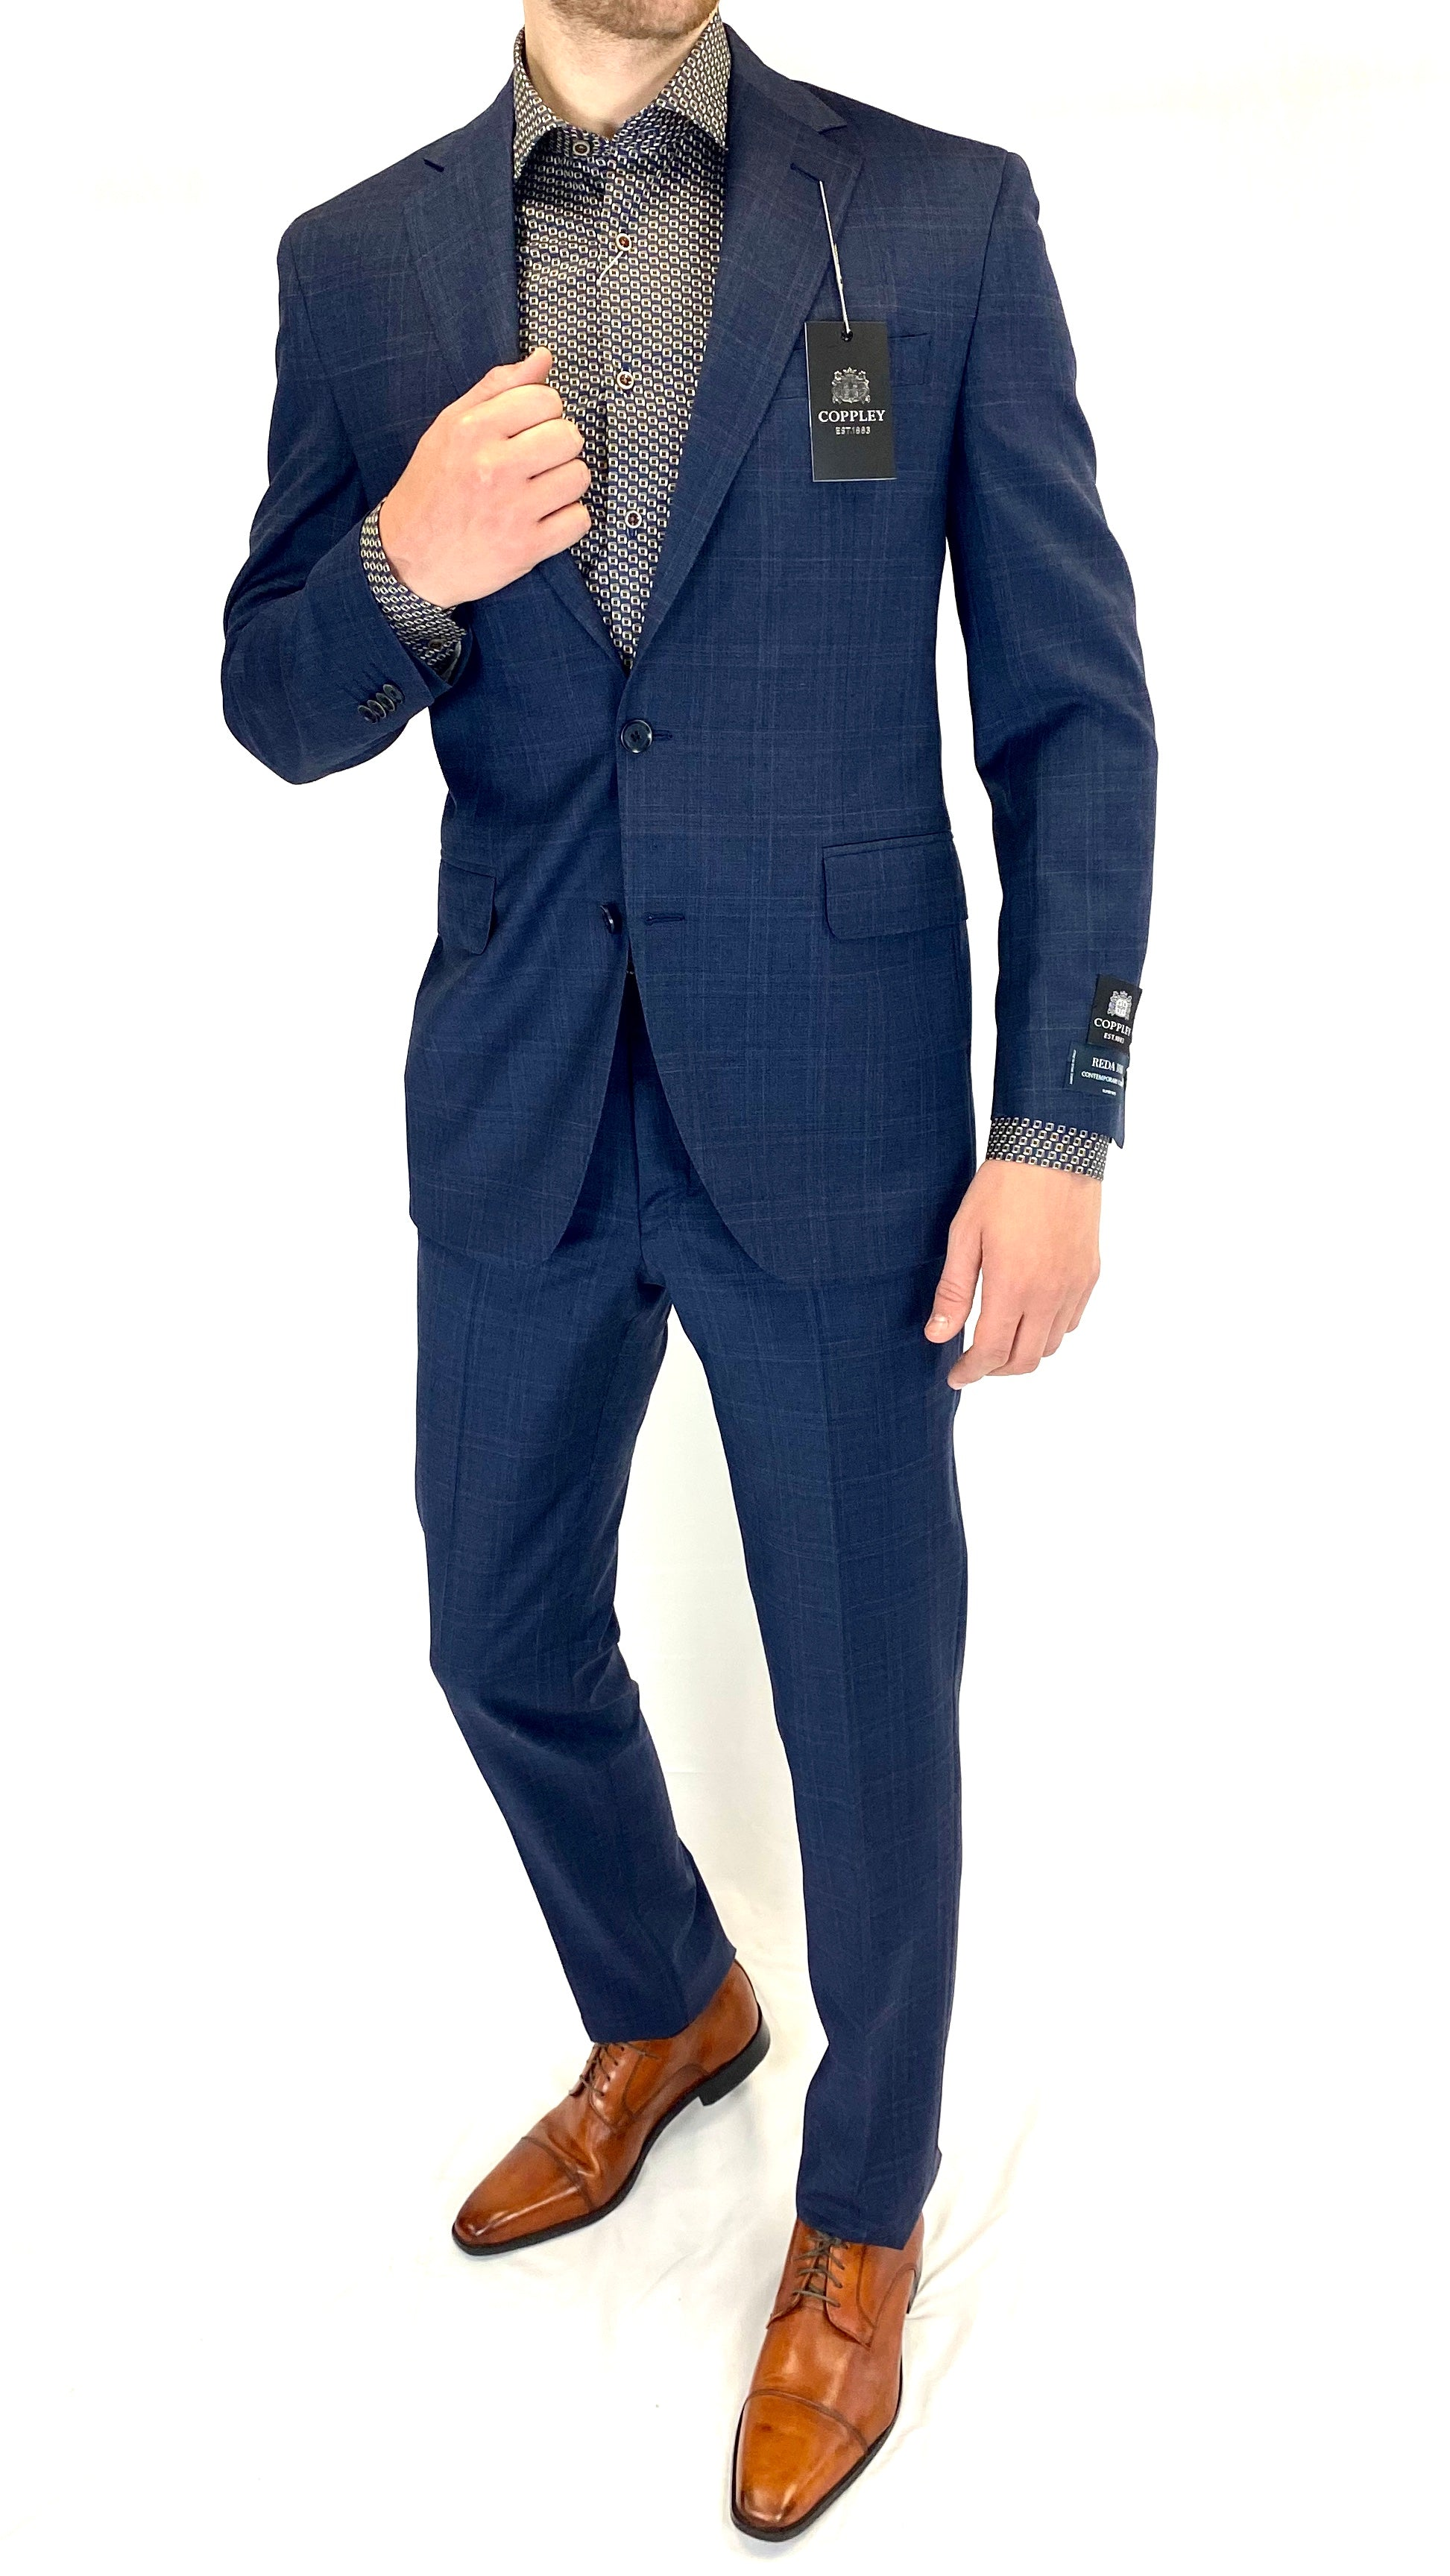 Coppley Modern Fit Windowpane Suit in Navy